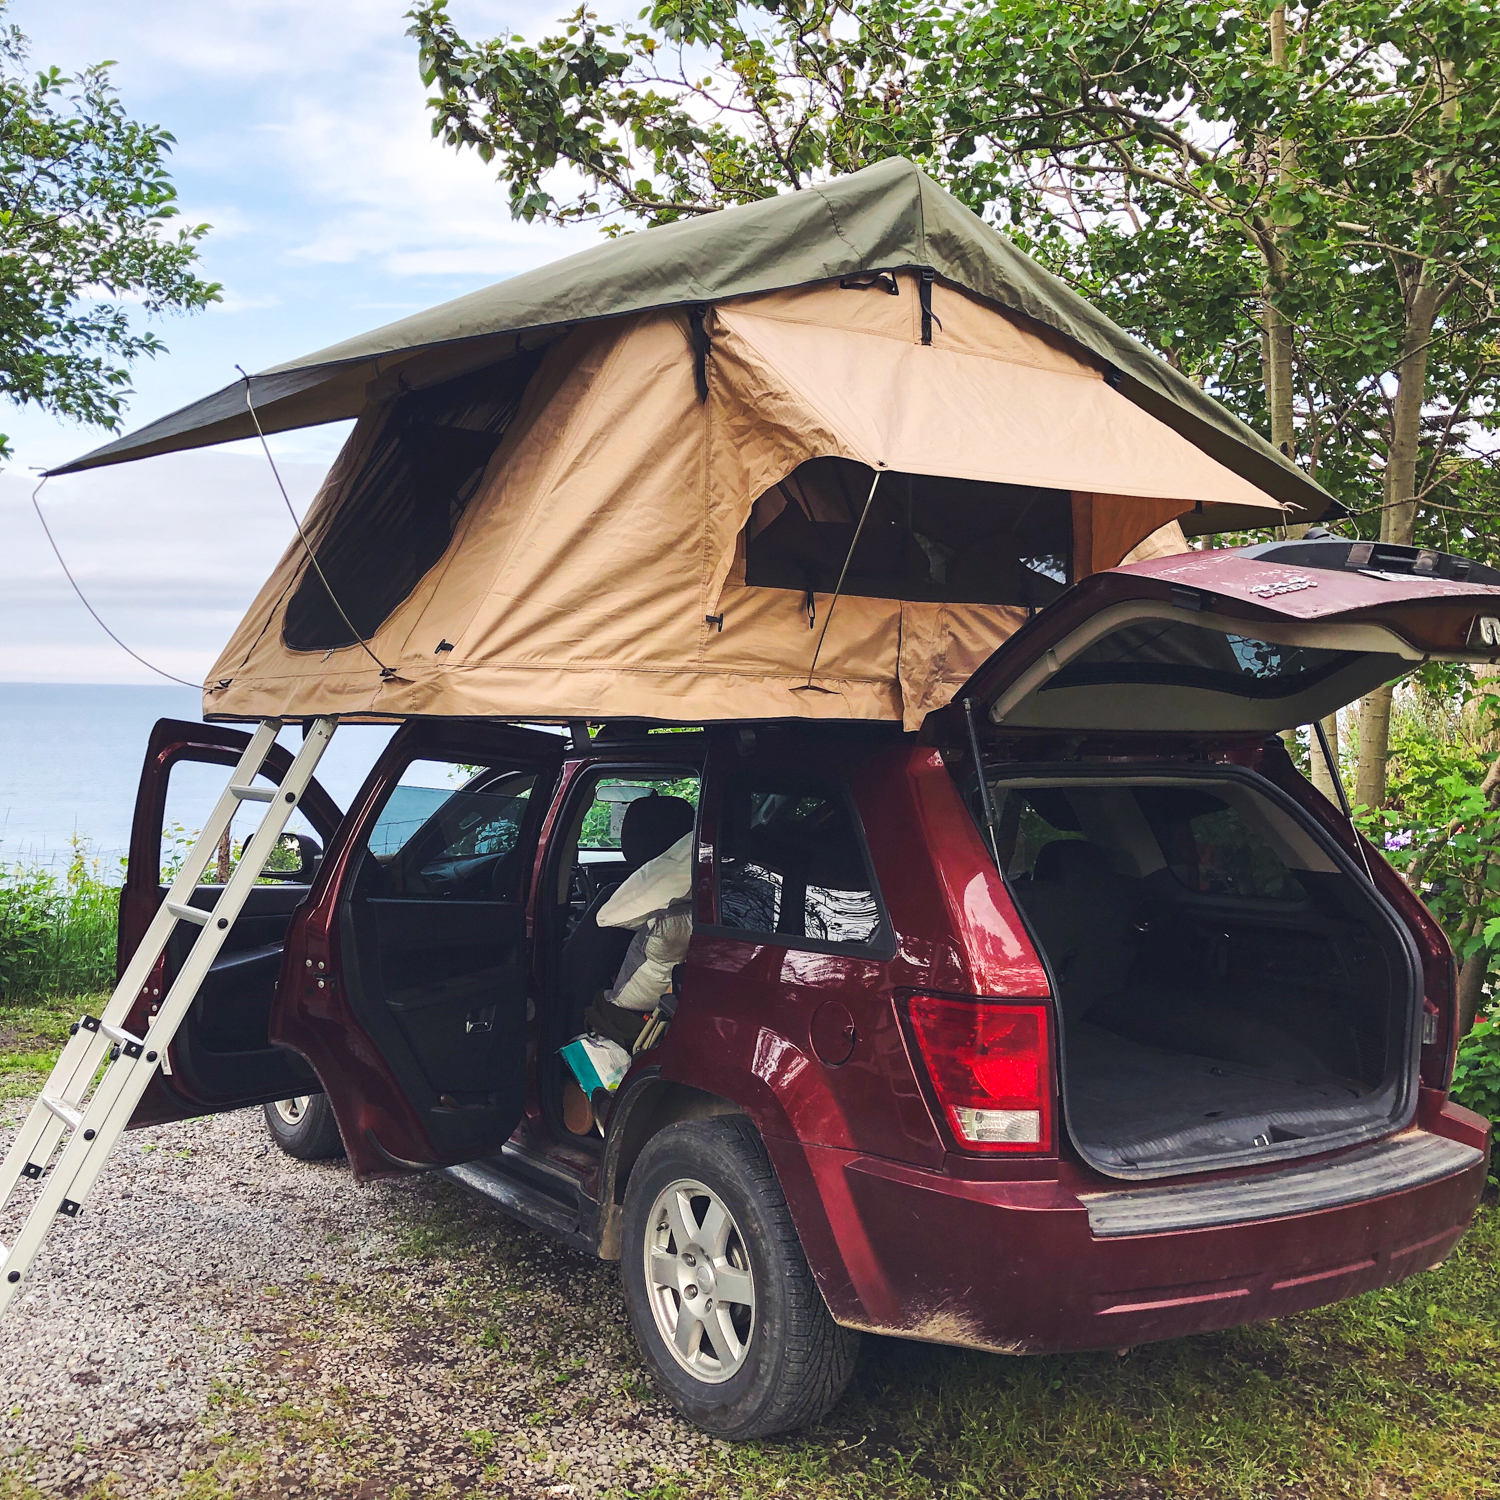 Soft roof tent rental with Le Baroudeur to experience the van life